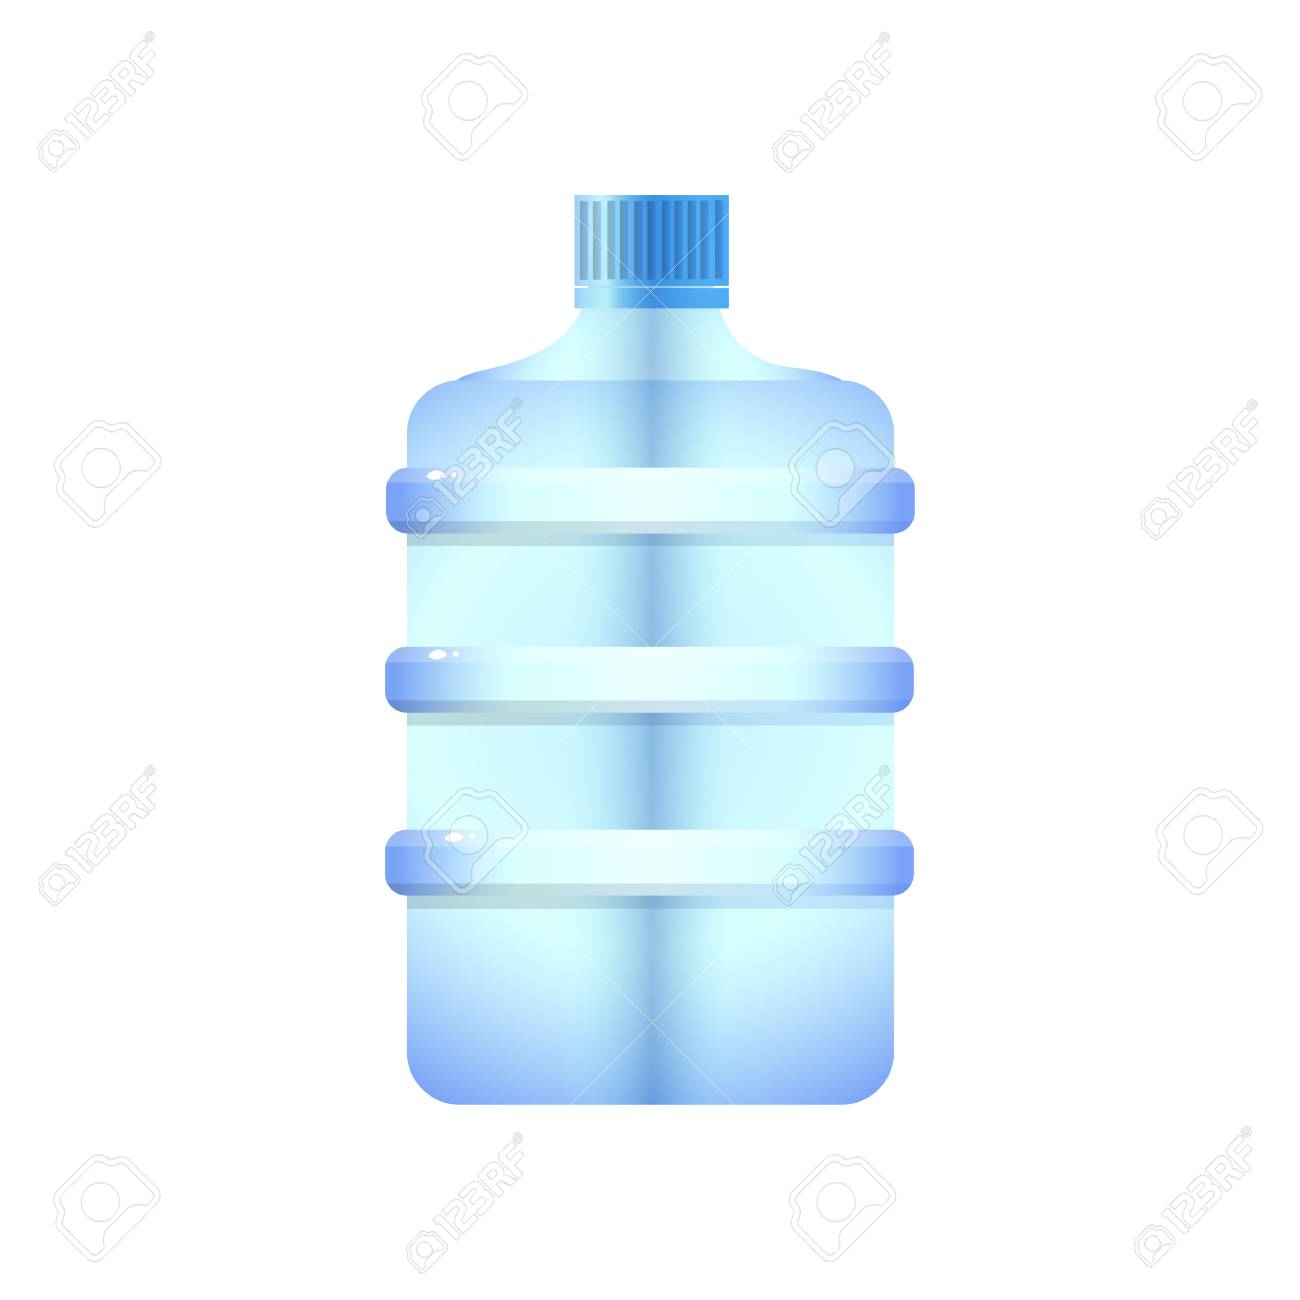 Large Plastic Water Bottle Barrel Shaped Design With Clipping